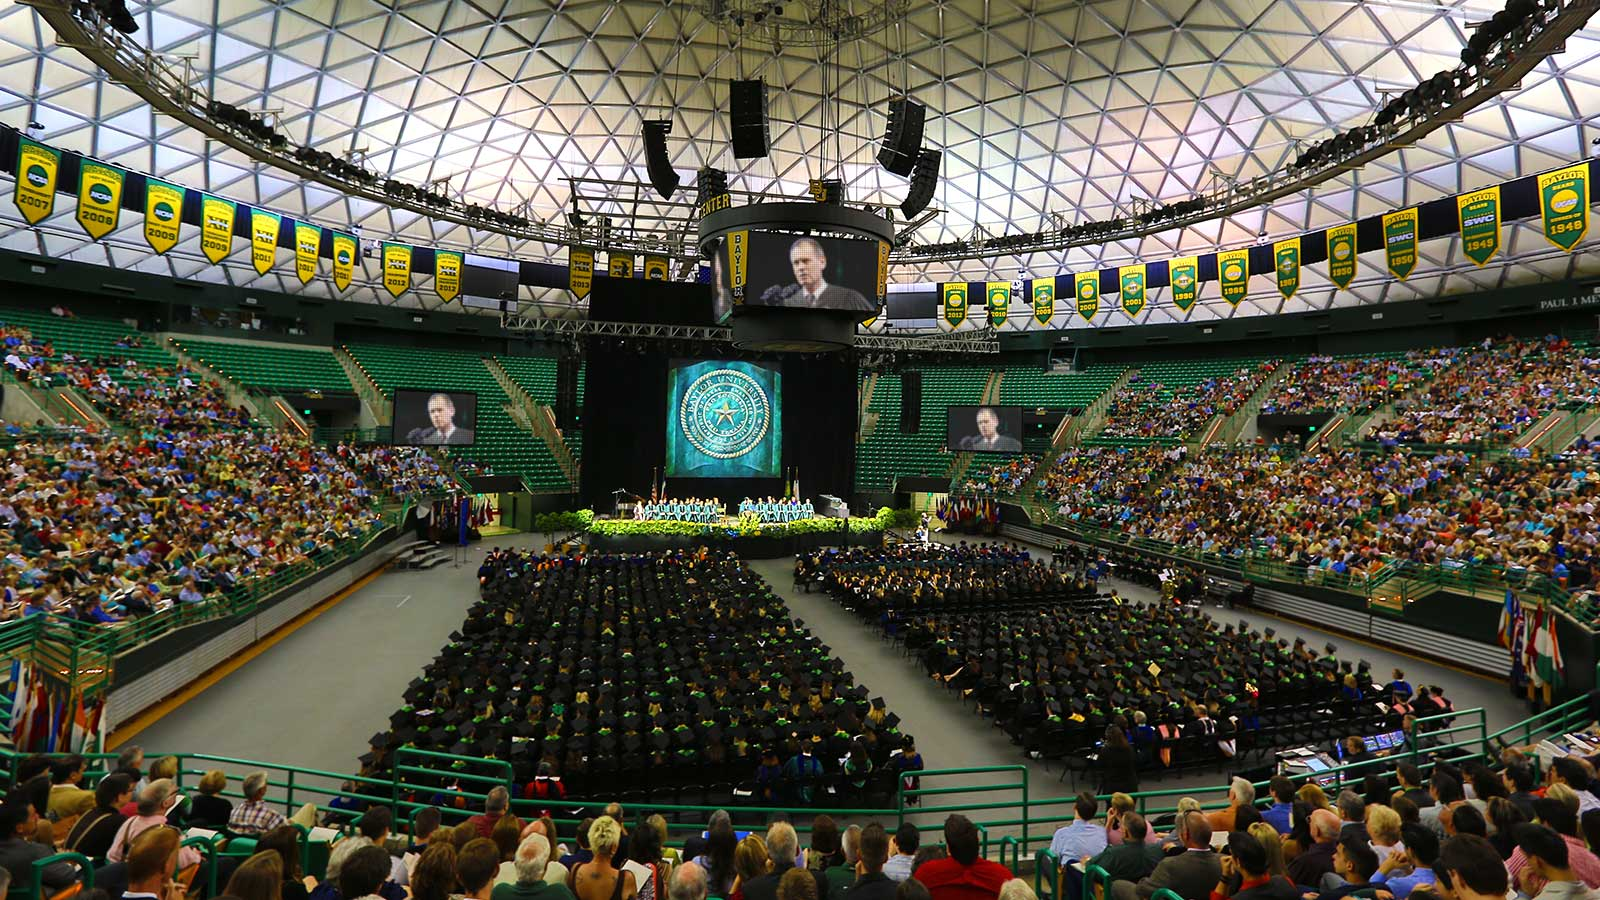 The culmination of the Baylor experience is commencement, when students receive their coveted diplomas and are commissioned for worldwide leadership and service.